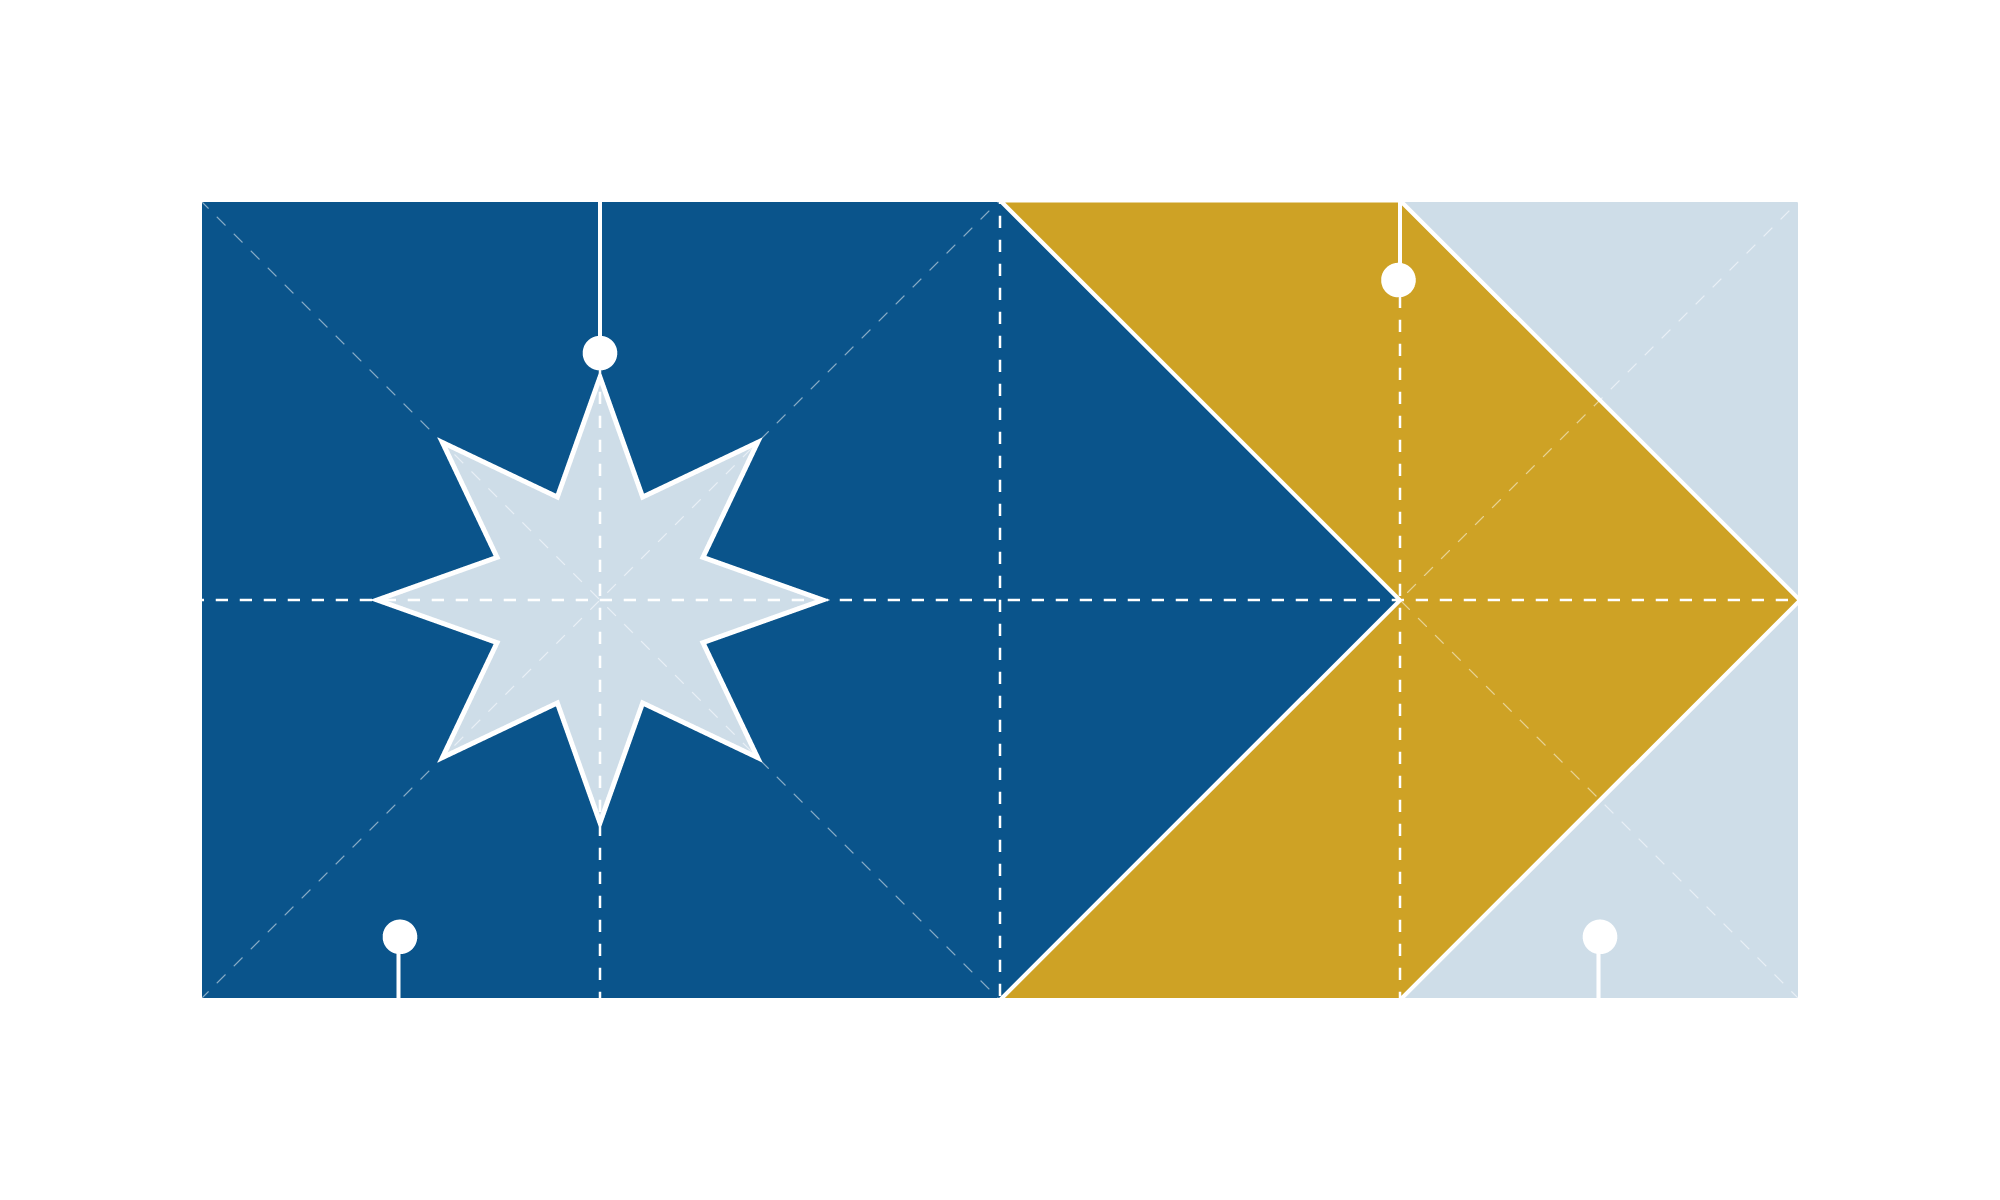 A federation star on our starry blue night, to reflect our rich history. A golden chevron / boomerang points towards the fly. In the corners, bright light to symbolise the daybreak, our future.